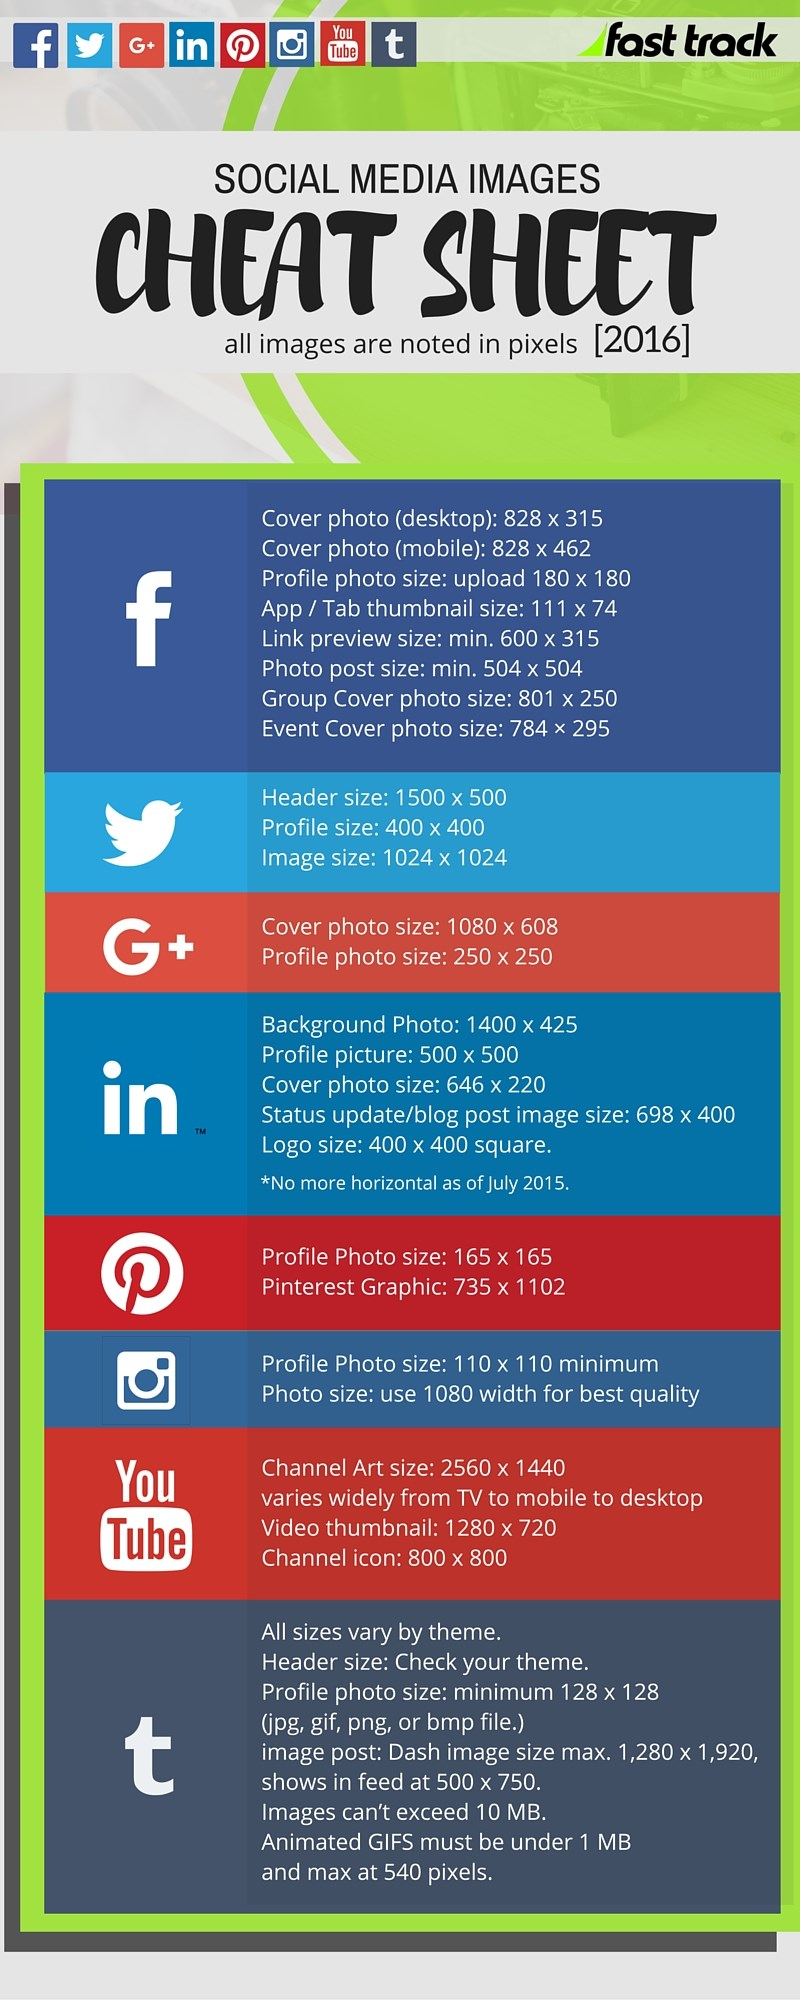 social media images cheat sheet for 2016